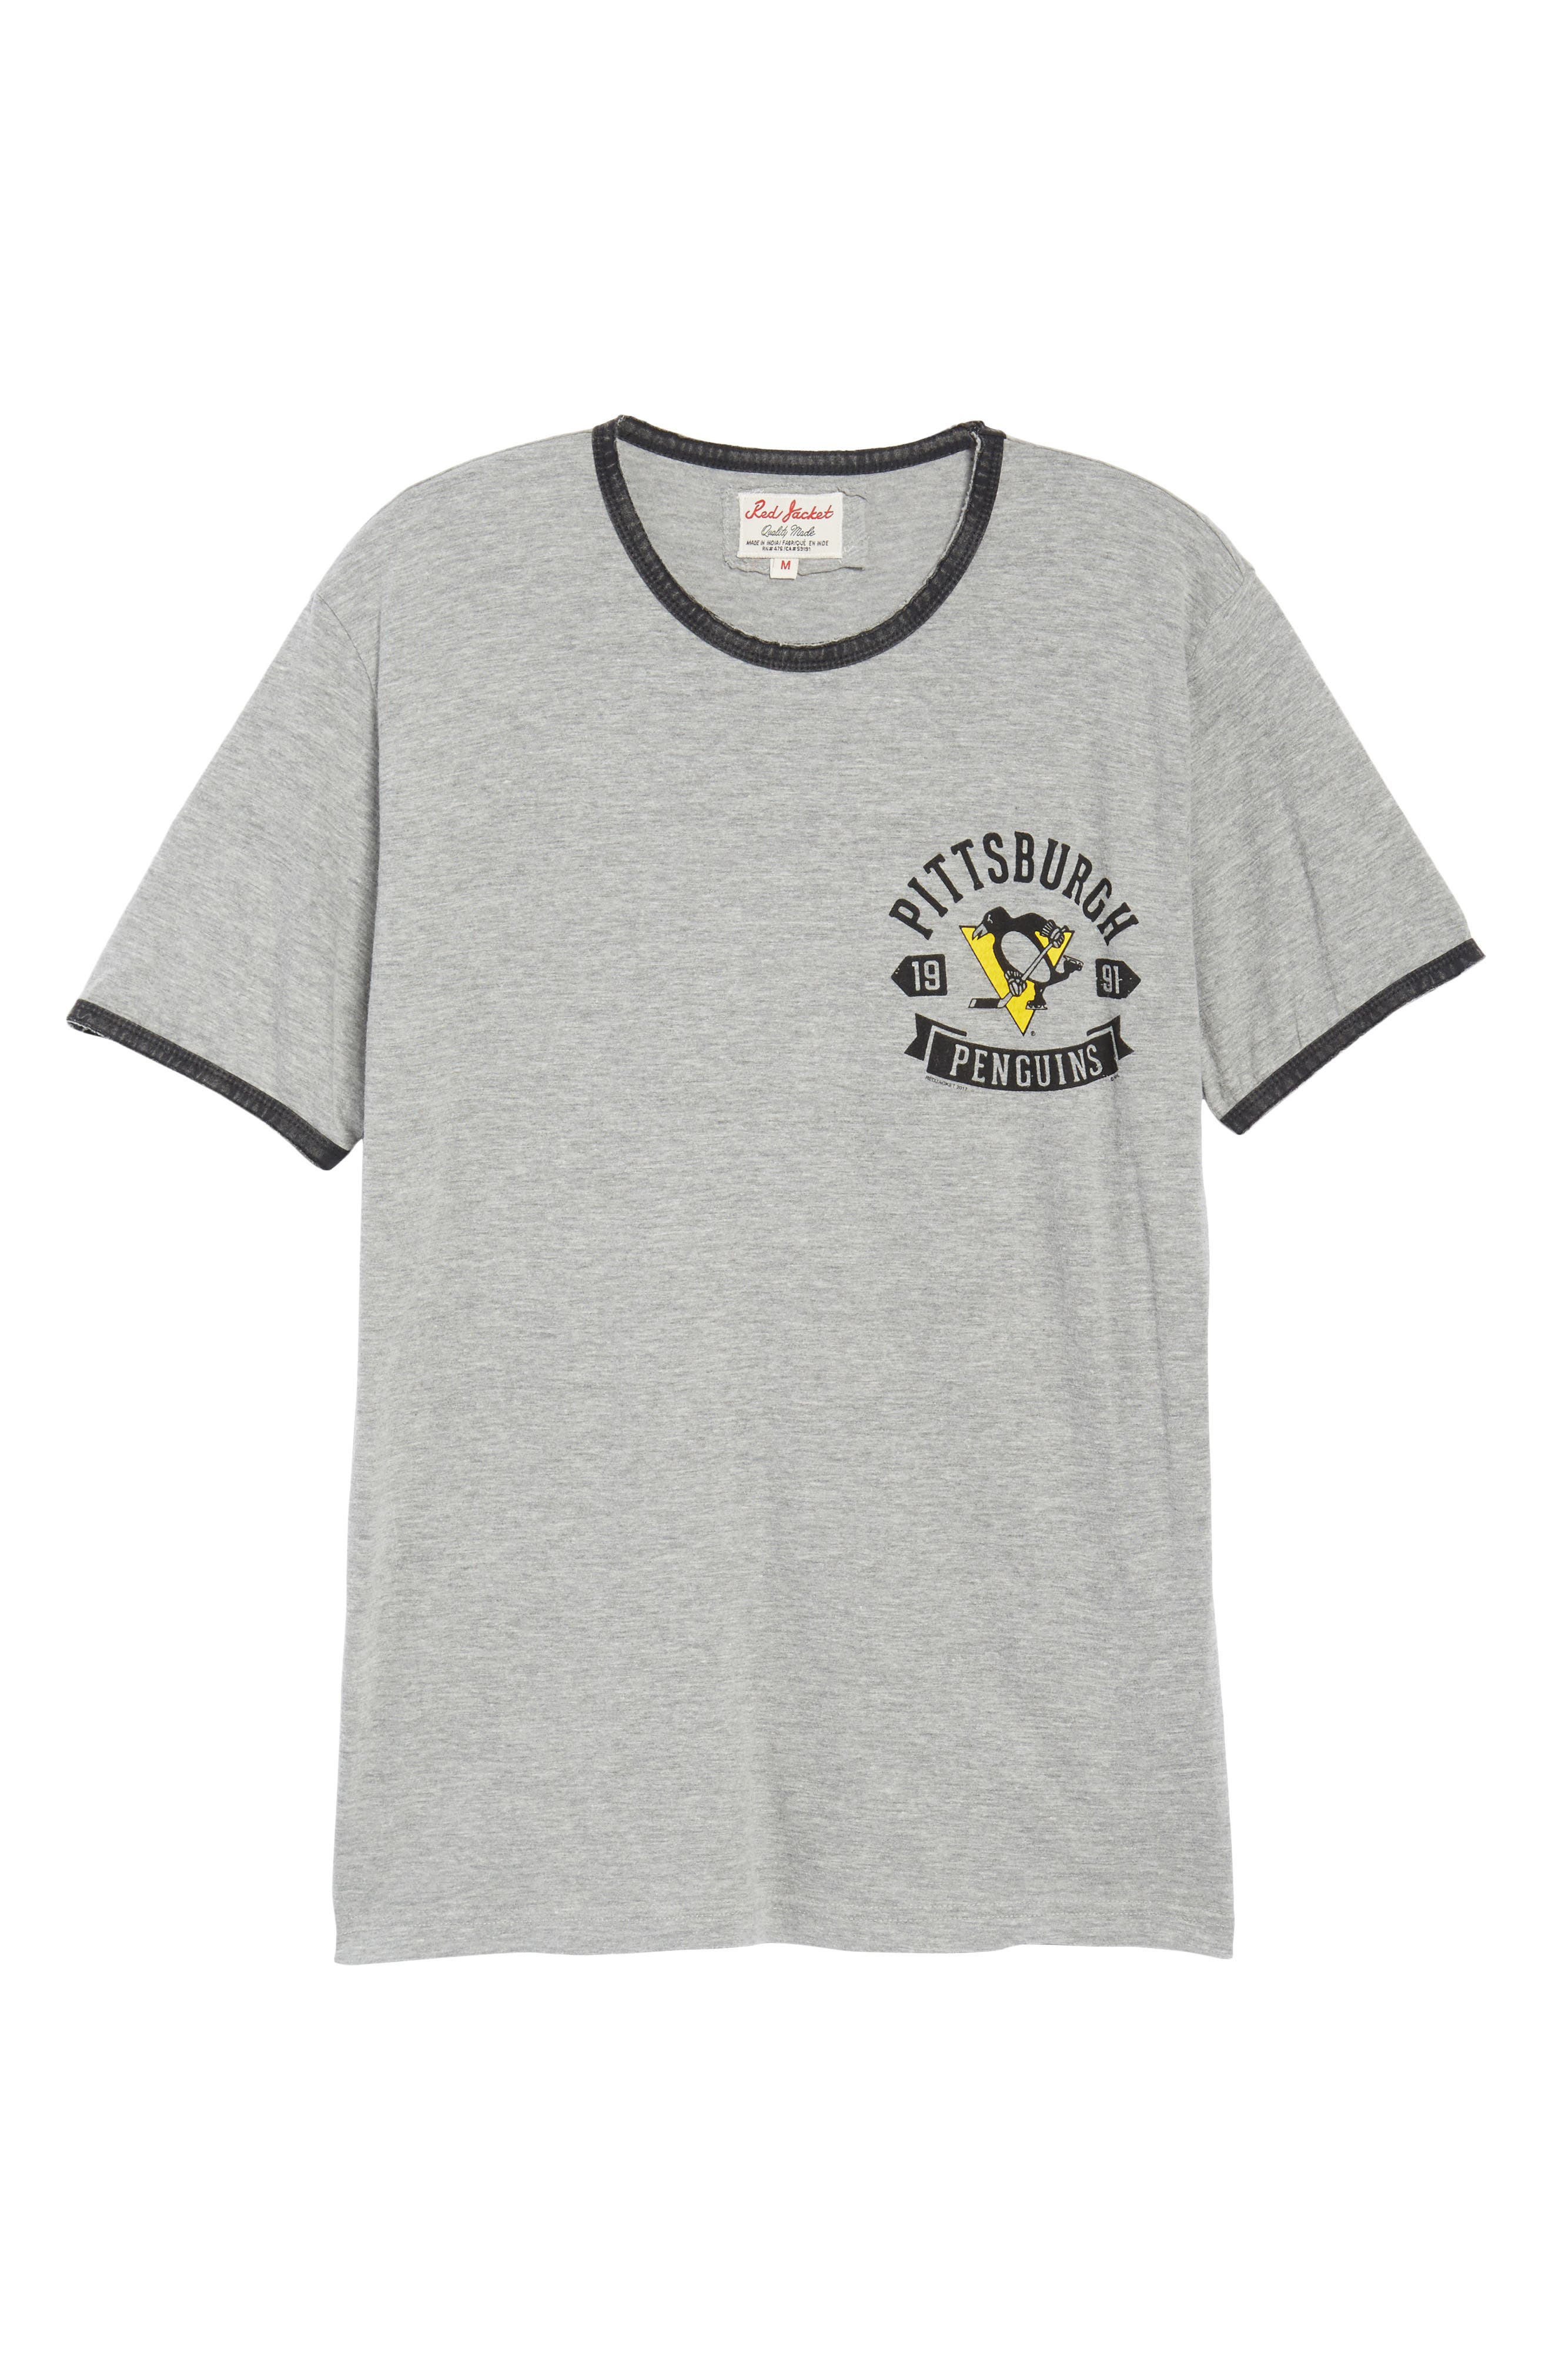 Portage Pittsburgh Penguins Ringer T-Shirt,                             Alternate thumbnail 6, color,                             Heather Grey-Black